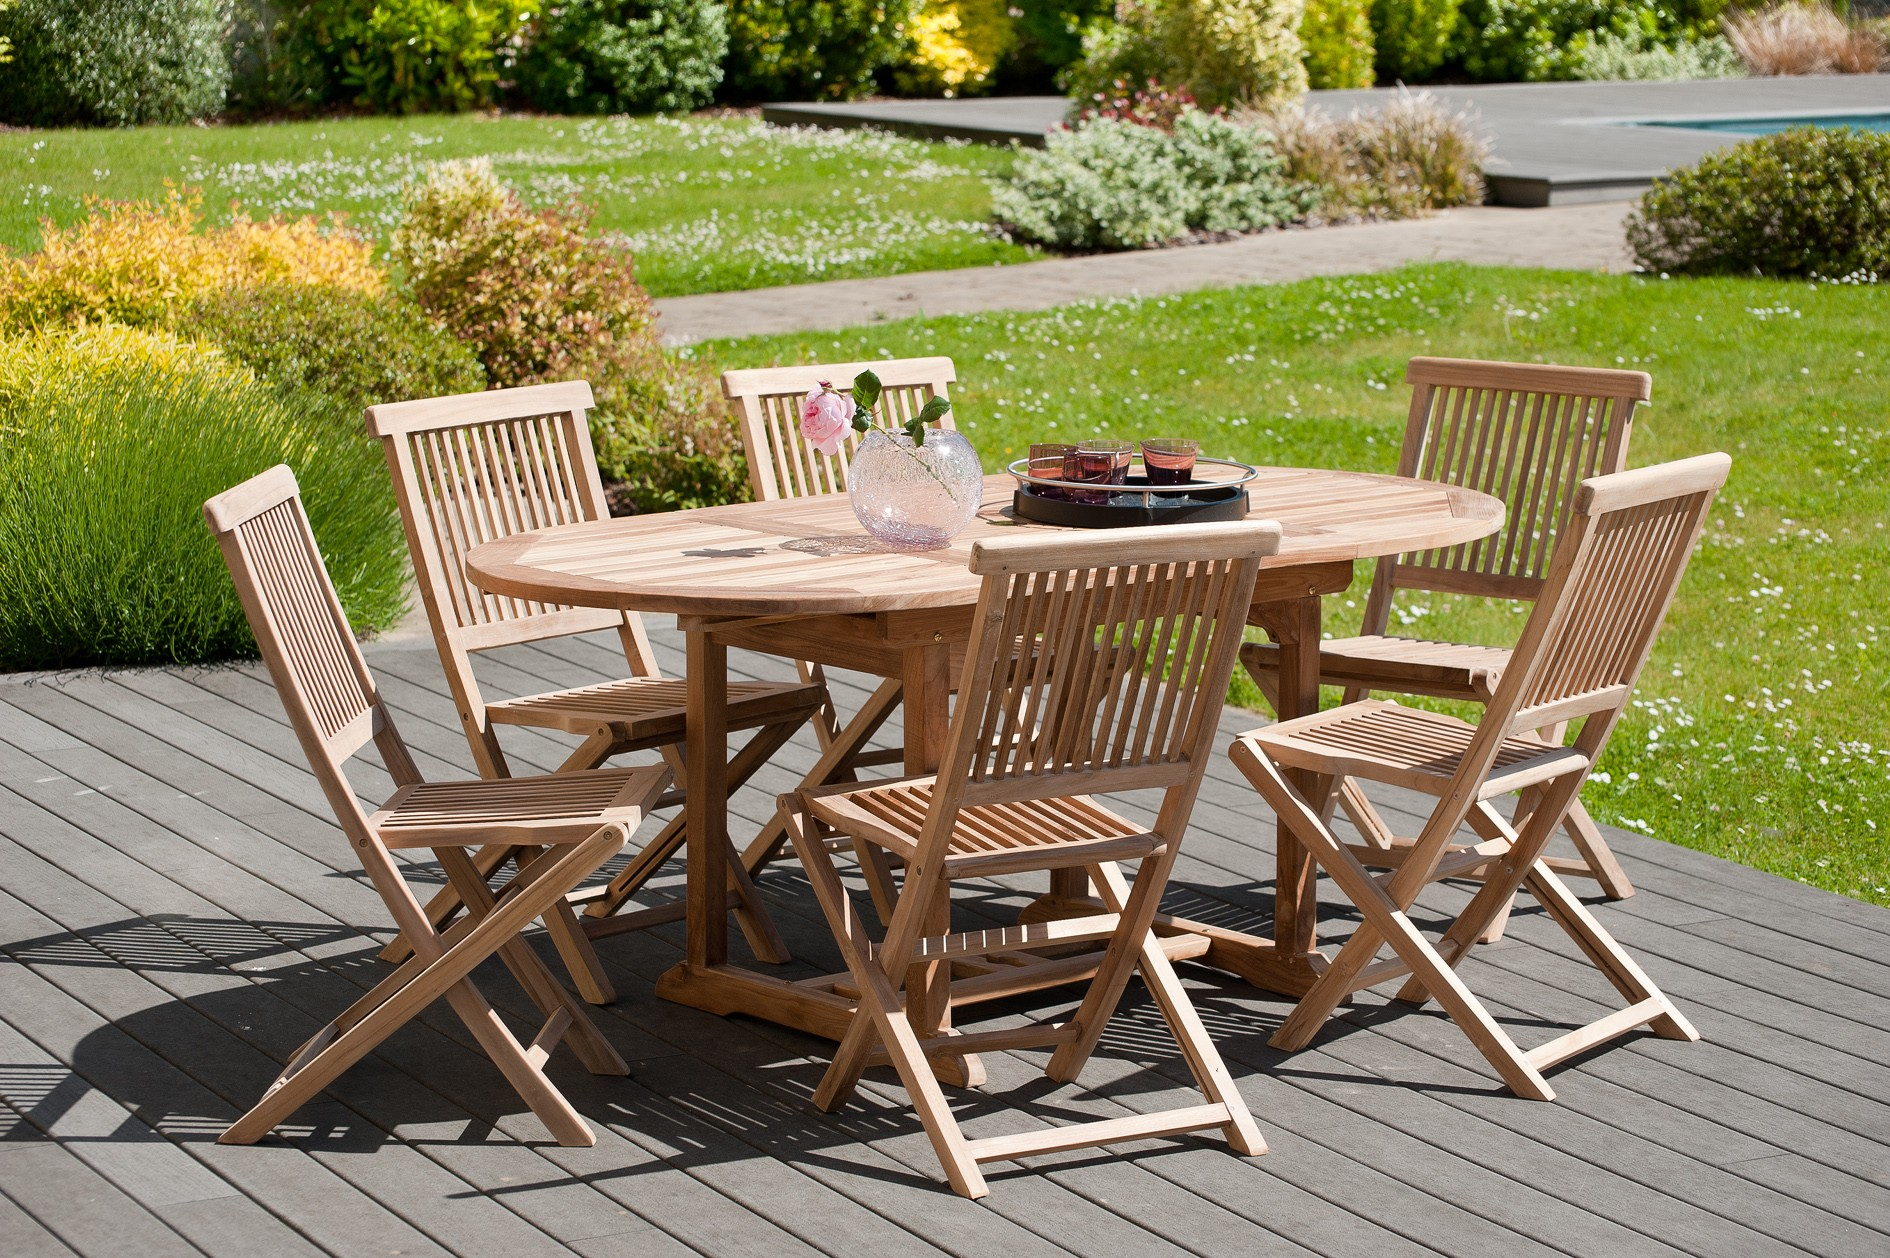 Salon de jardin en teck Table ovale 120/180 cm et 6 chaises Java pliantes  SUMMER